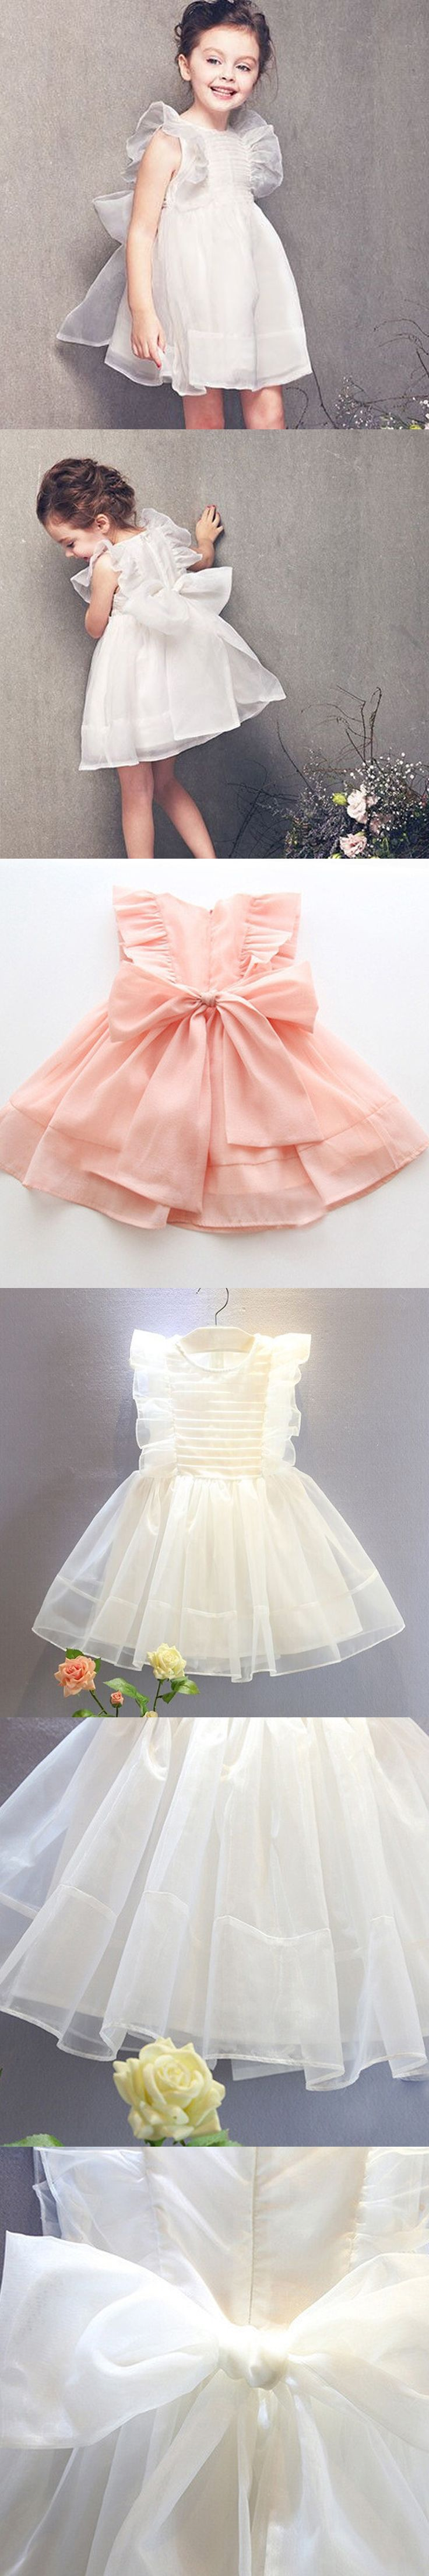 Girls clothes summer dress 2016 brand baby girl clothes white pink Party princess Dress for kids Bow Wedding clothes 2-6 years $15.69